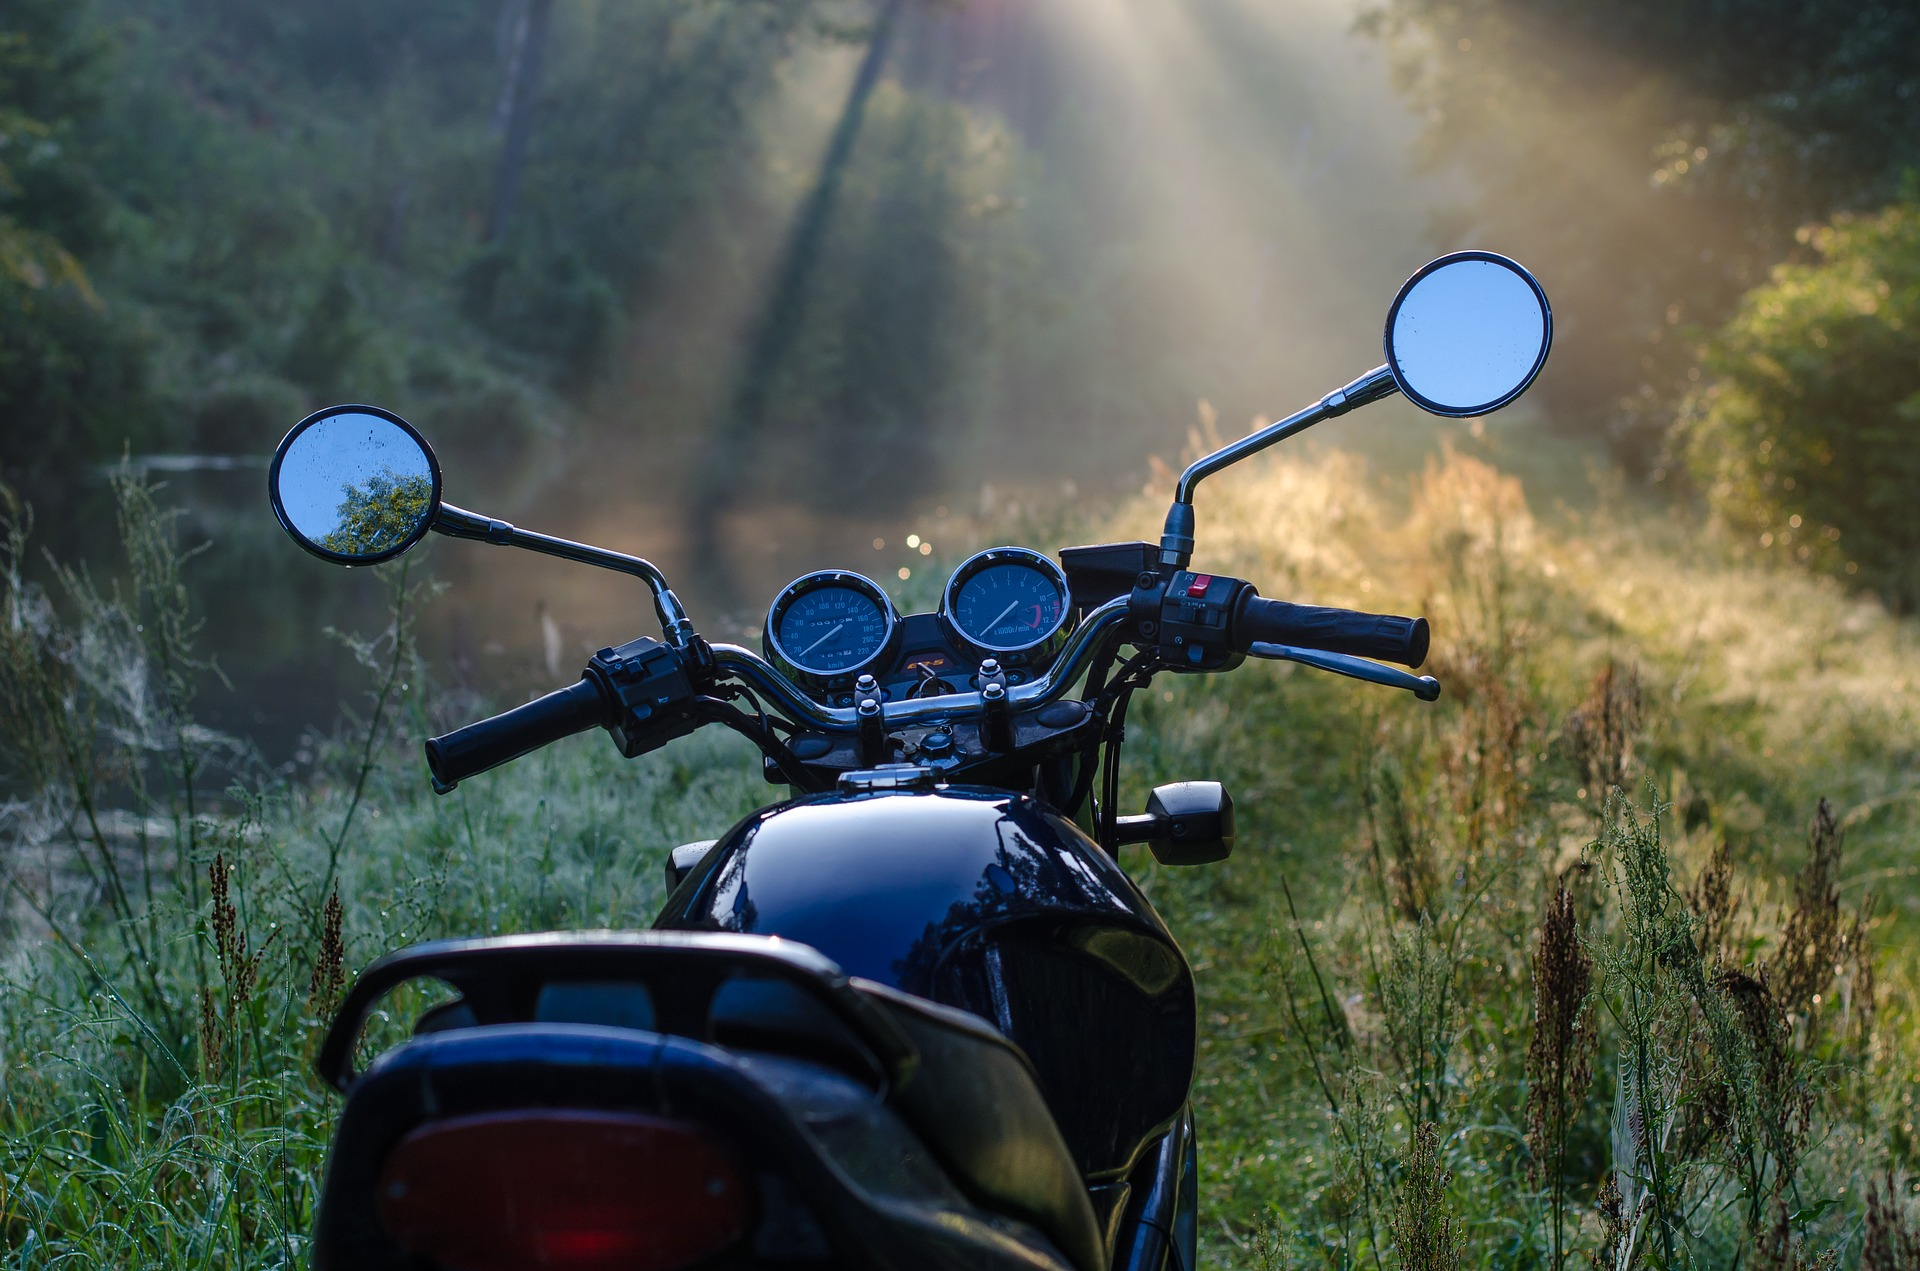 motorcycle-1953342_1920 (1)